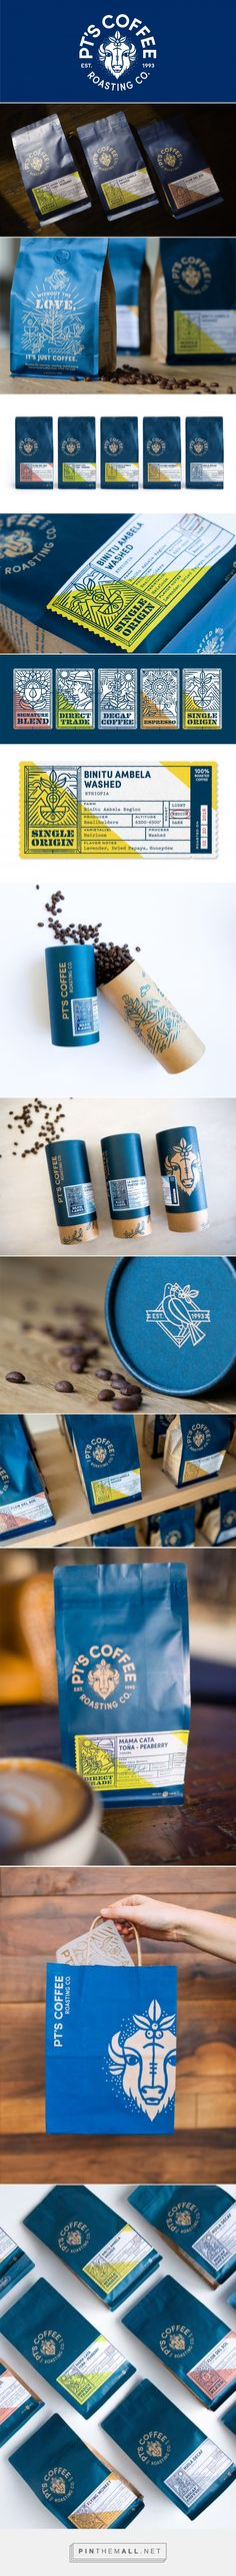 PT's Coffee Roasting Co. Branding and Packaging by Carpenter Collective | Fivestar Branding Agency – Design and Branding Agency & Curated Inspiration Gallery #coffee #coffeepackaging #packaging #package #packagedesign #packaginginspiration #design #designinspiration